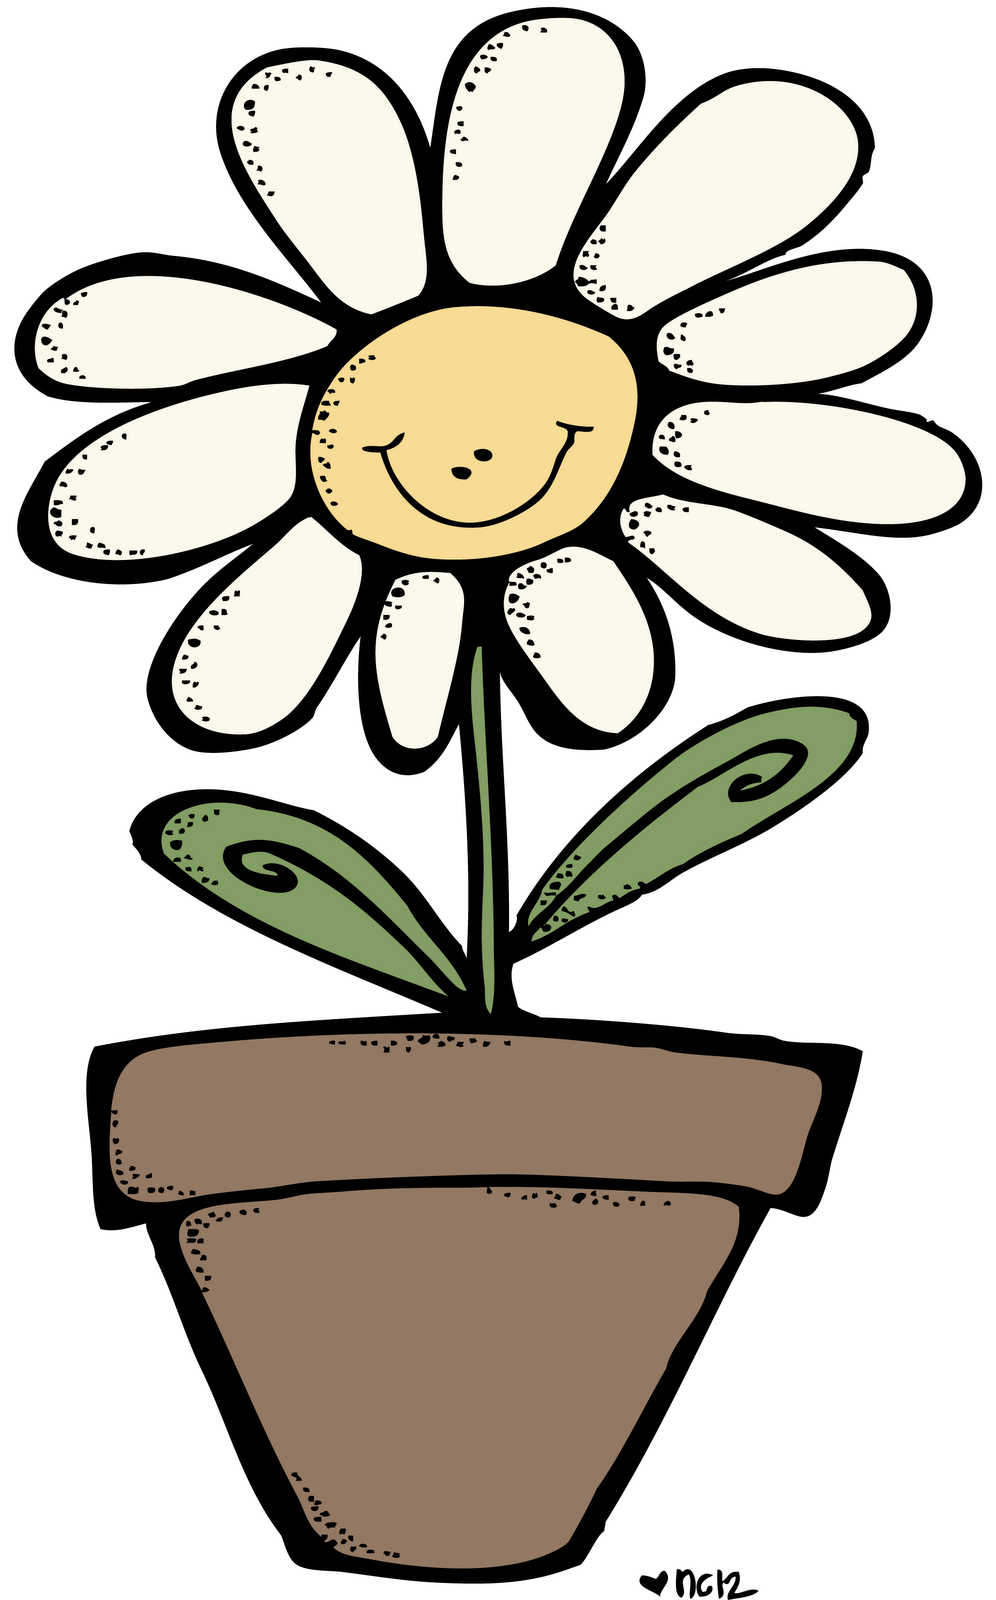 Smiling daisy clipart png transparent download Smiling flowers in garden clipart - Clip Art Library png transparent download